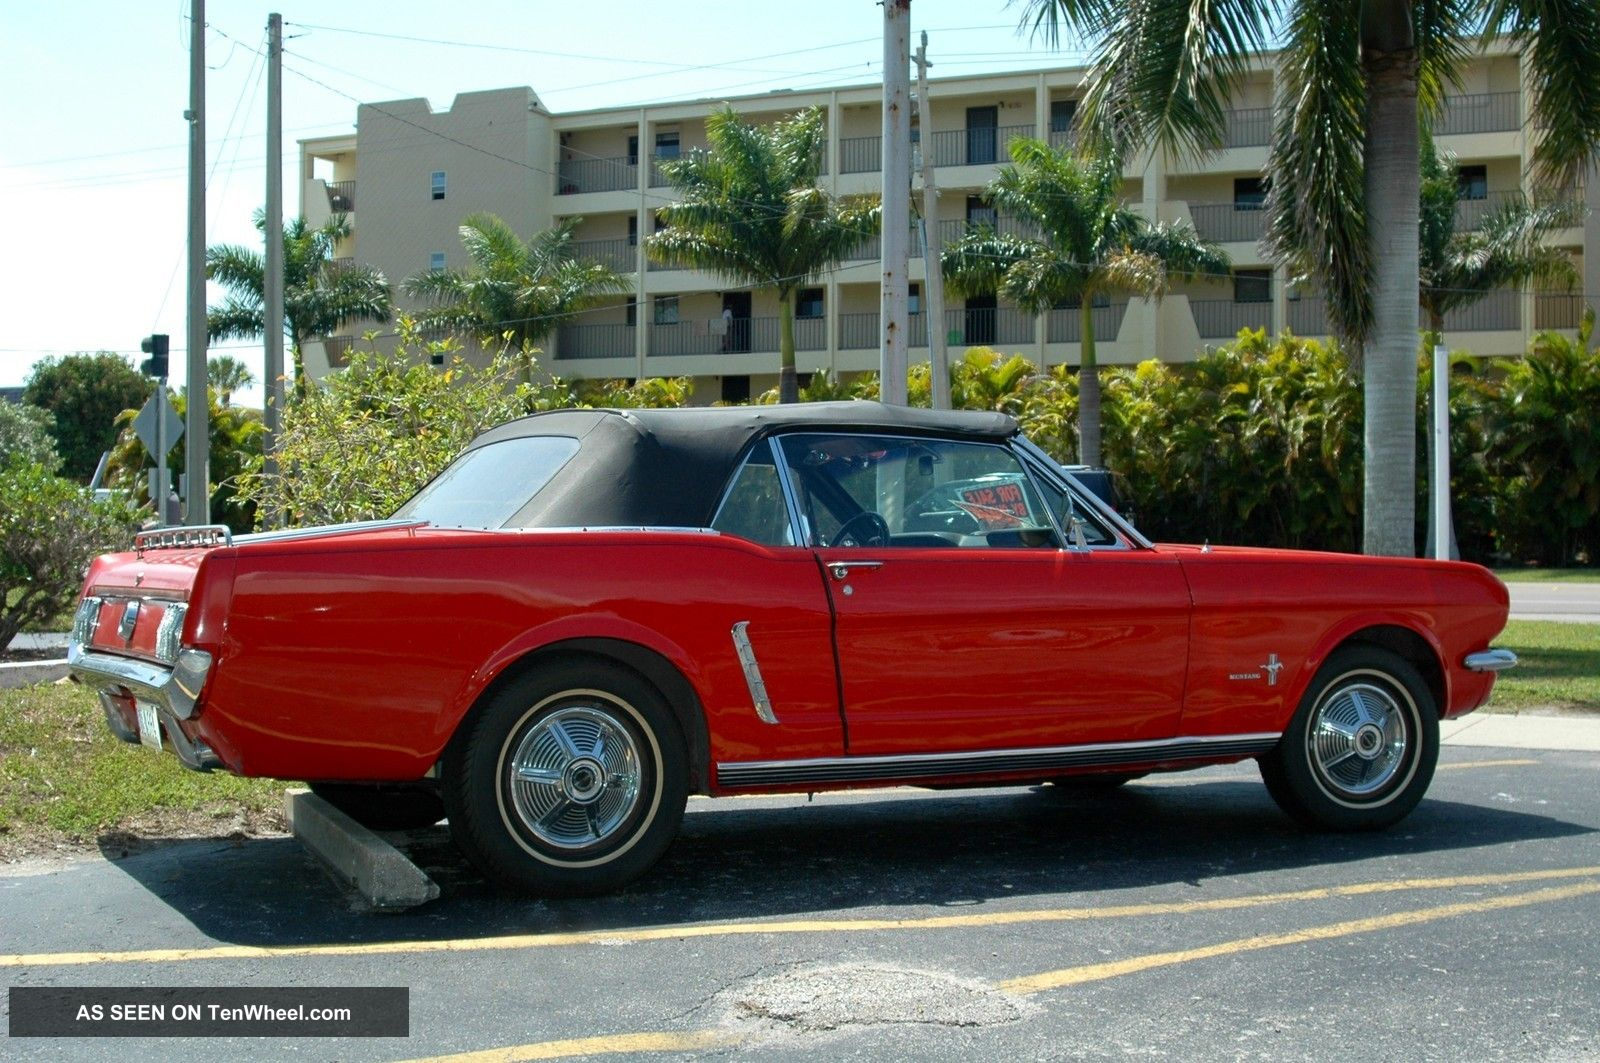 1965 Mustang Convertible on 1965 mustang all wheel drive